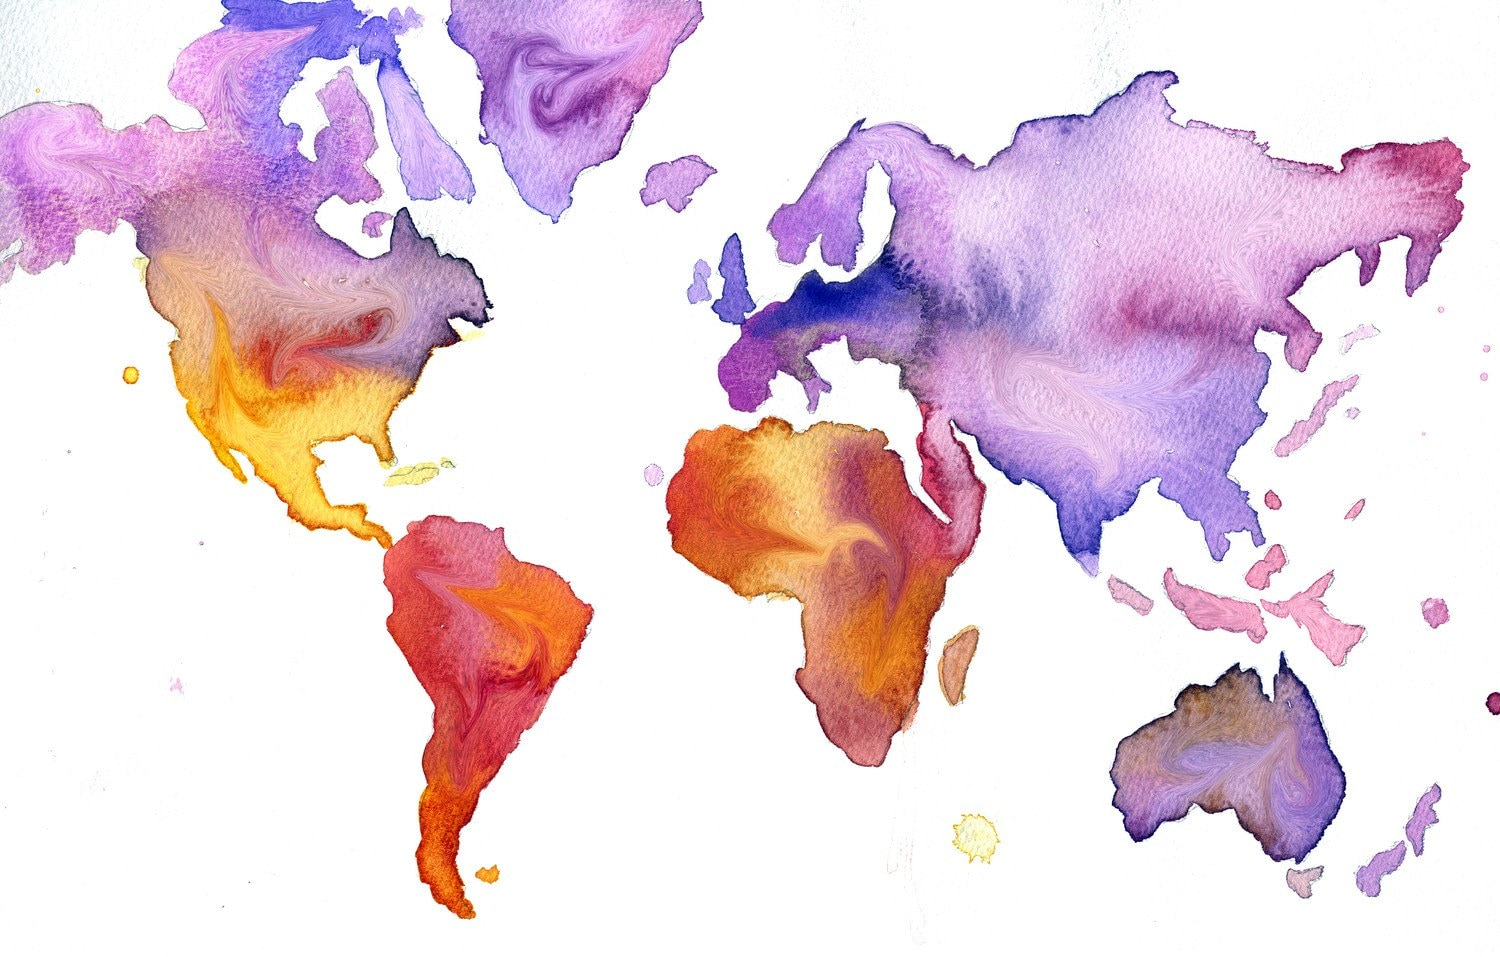 Watercolor World Map Illustration: Your World in Watercolor print